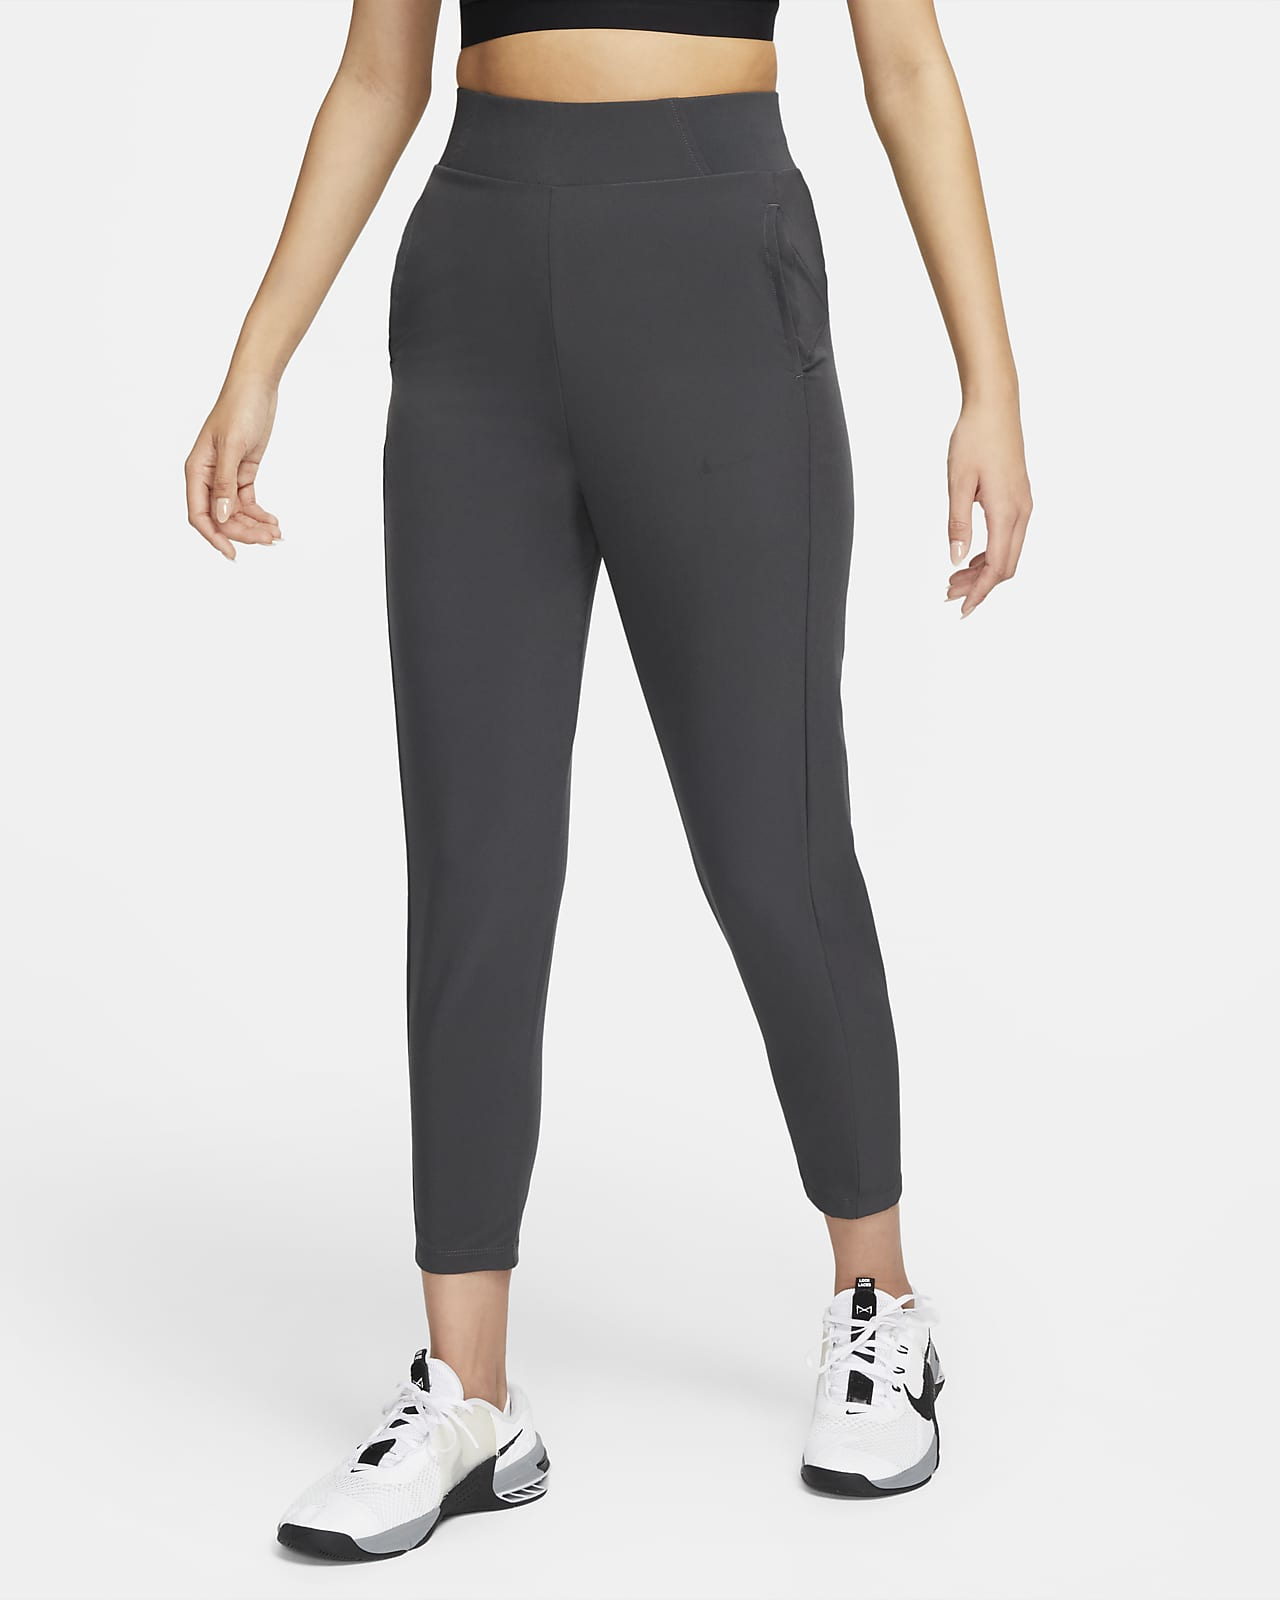 Nike Bliss Victory Women's Training Trousers